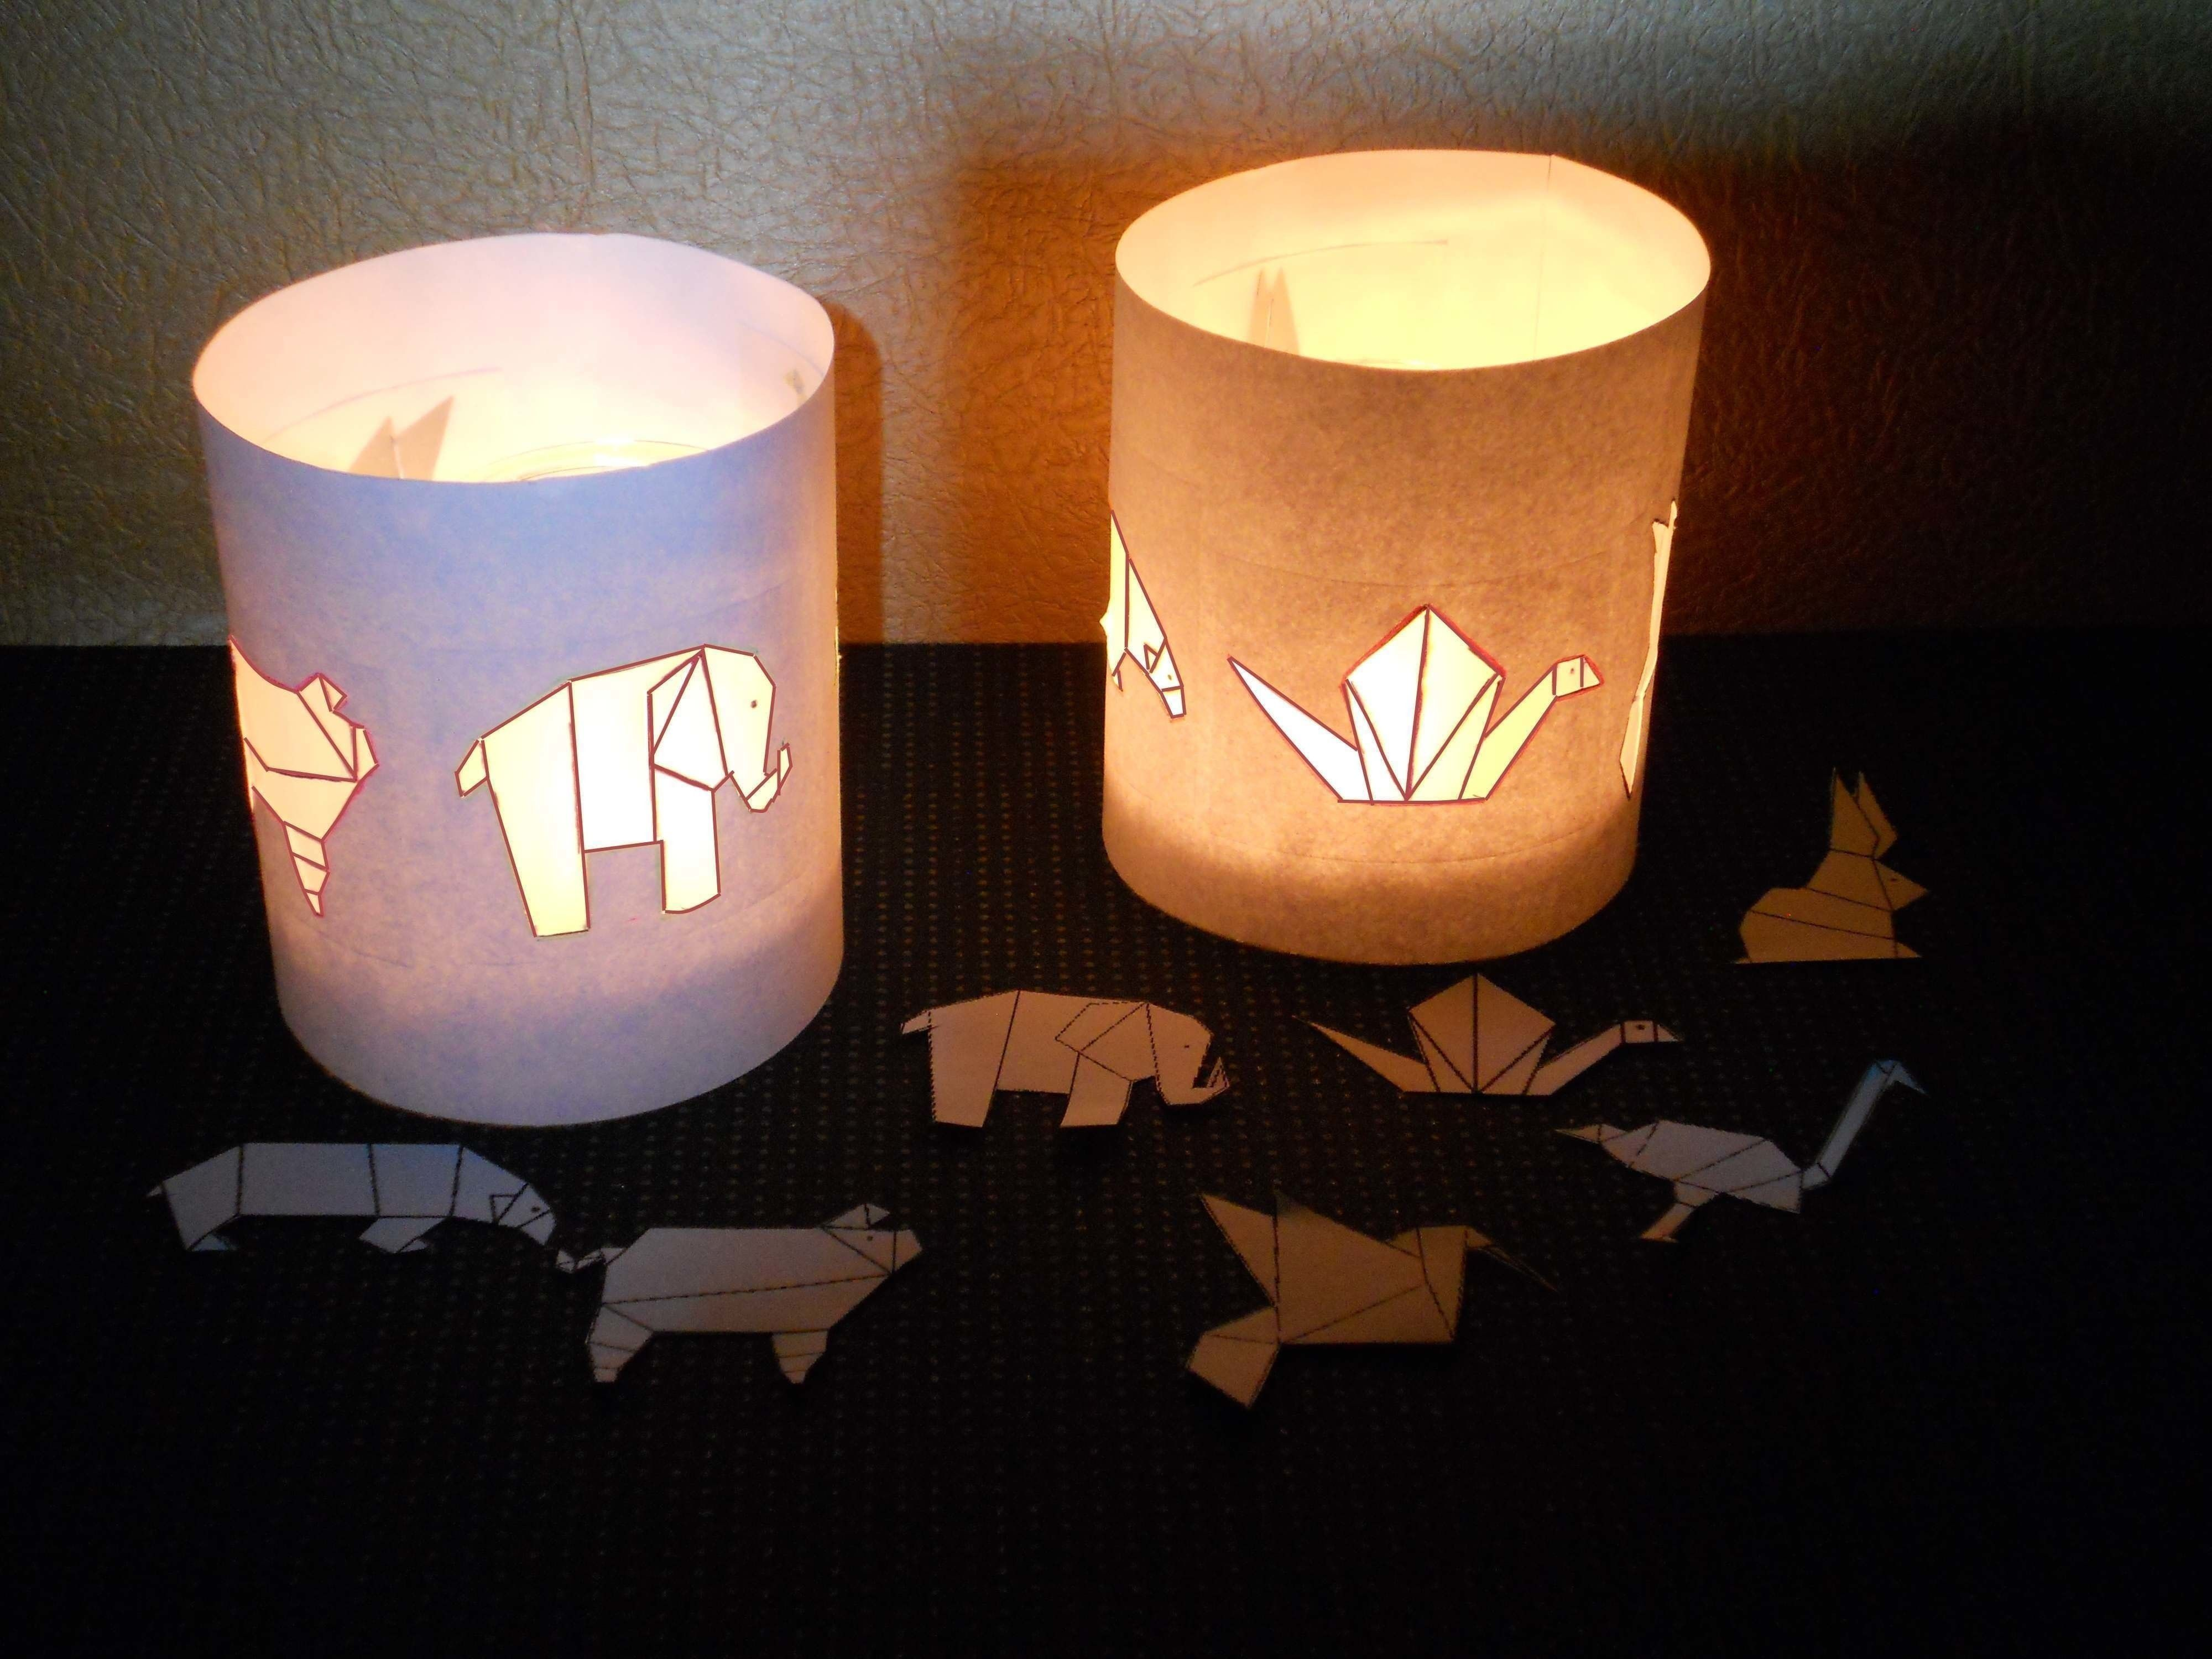 Origami Themed Tea Lights  •  Free tutorial with pictures on how to make a decorative light in under 20 minutes